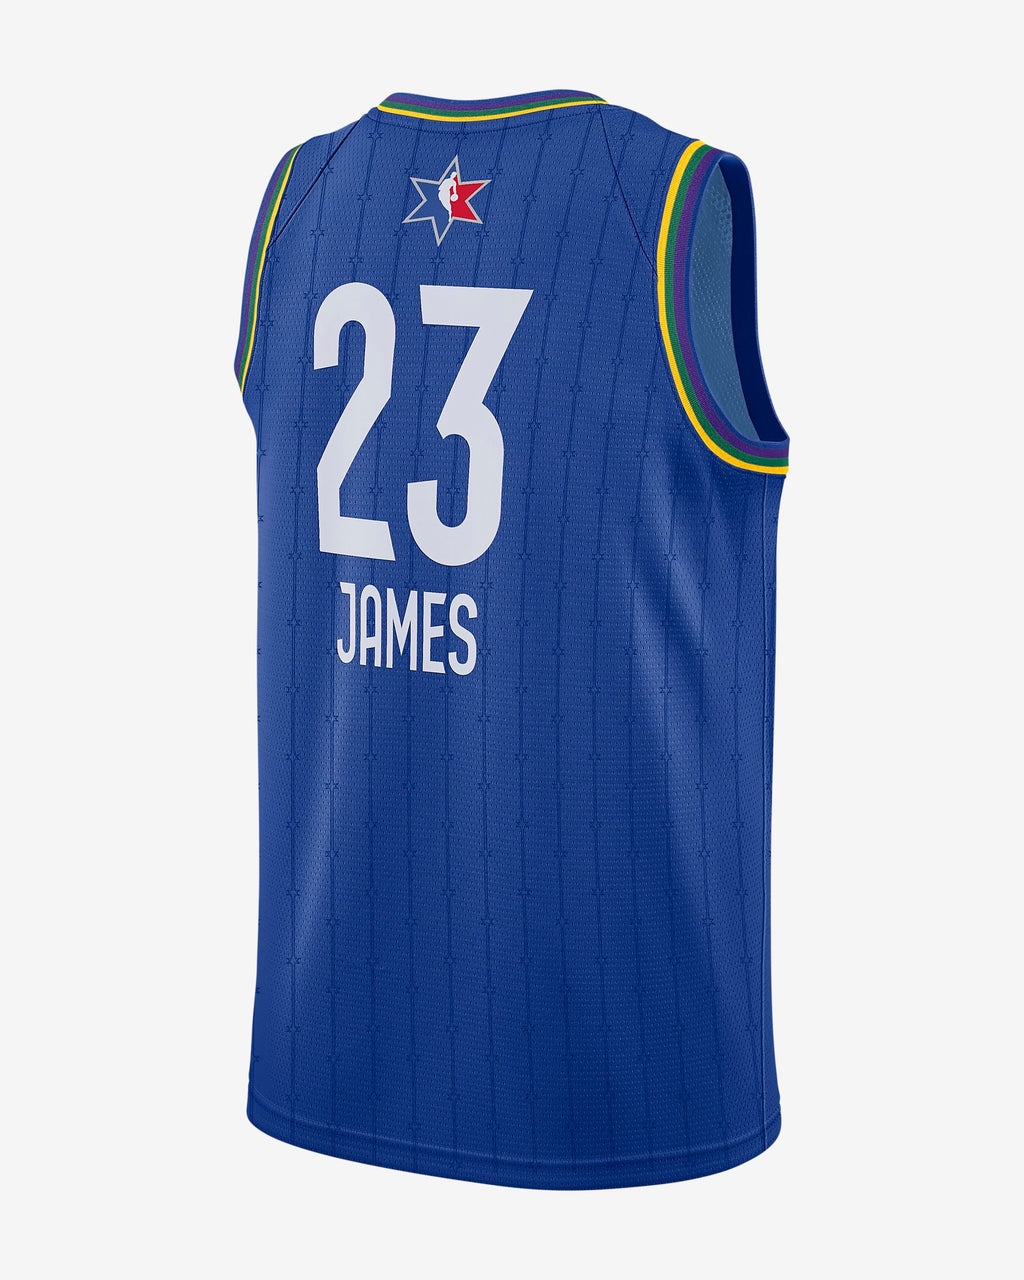 Jordan NBA All Star Swingman jersey - Lebron James - CJ1059-400